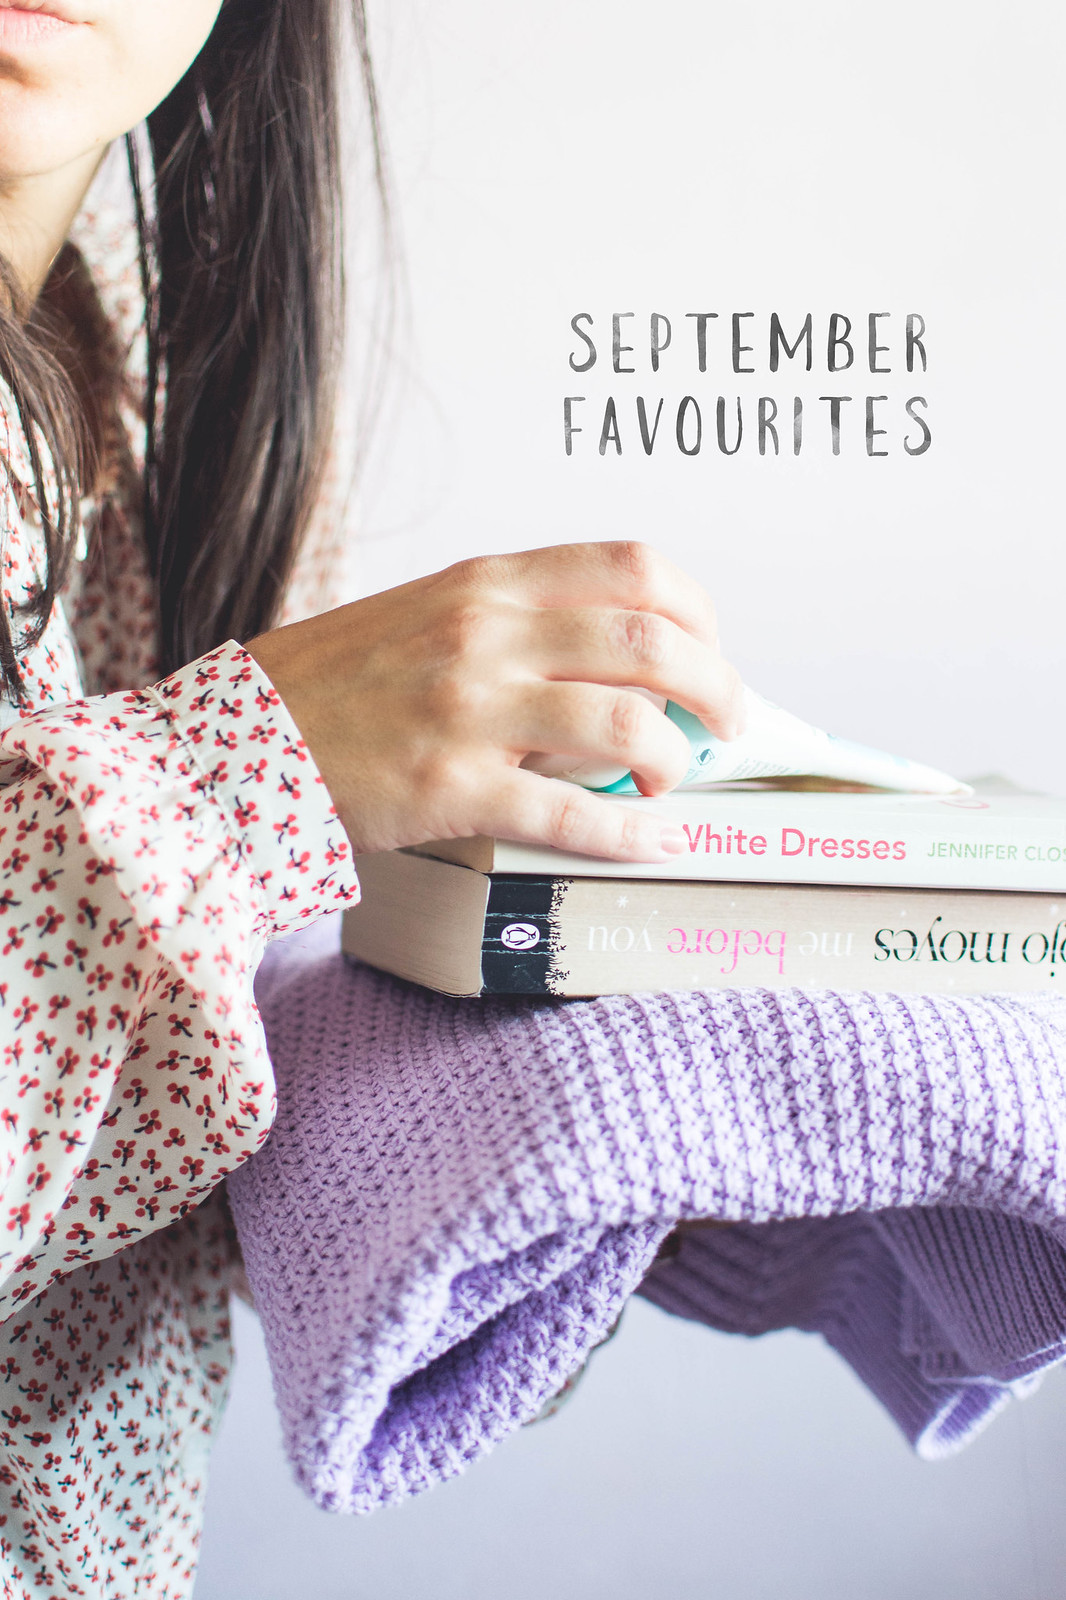 Books, style and beauty favourites for September